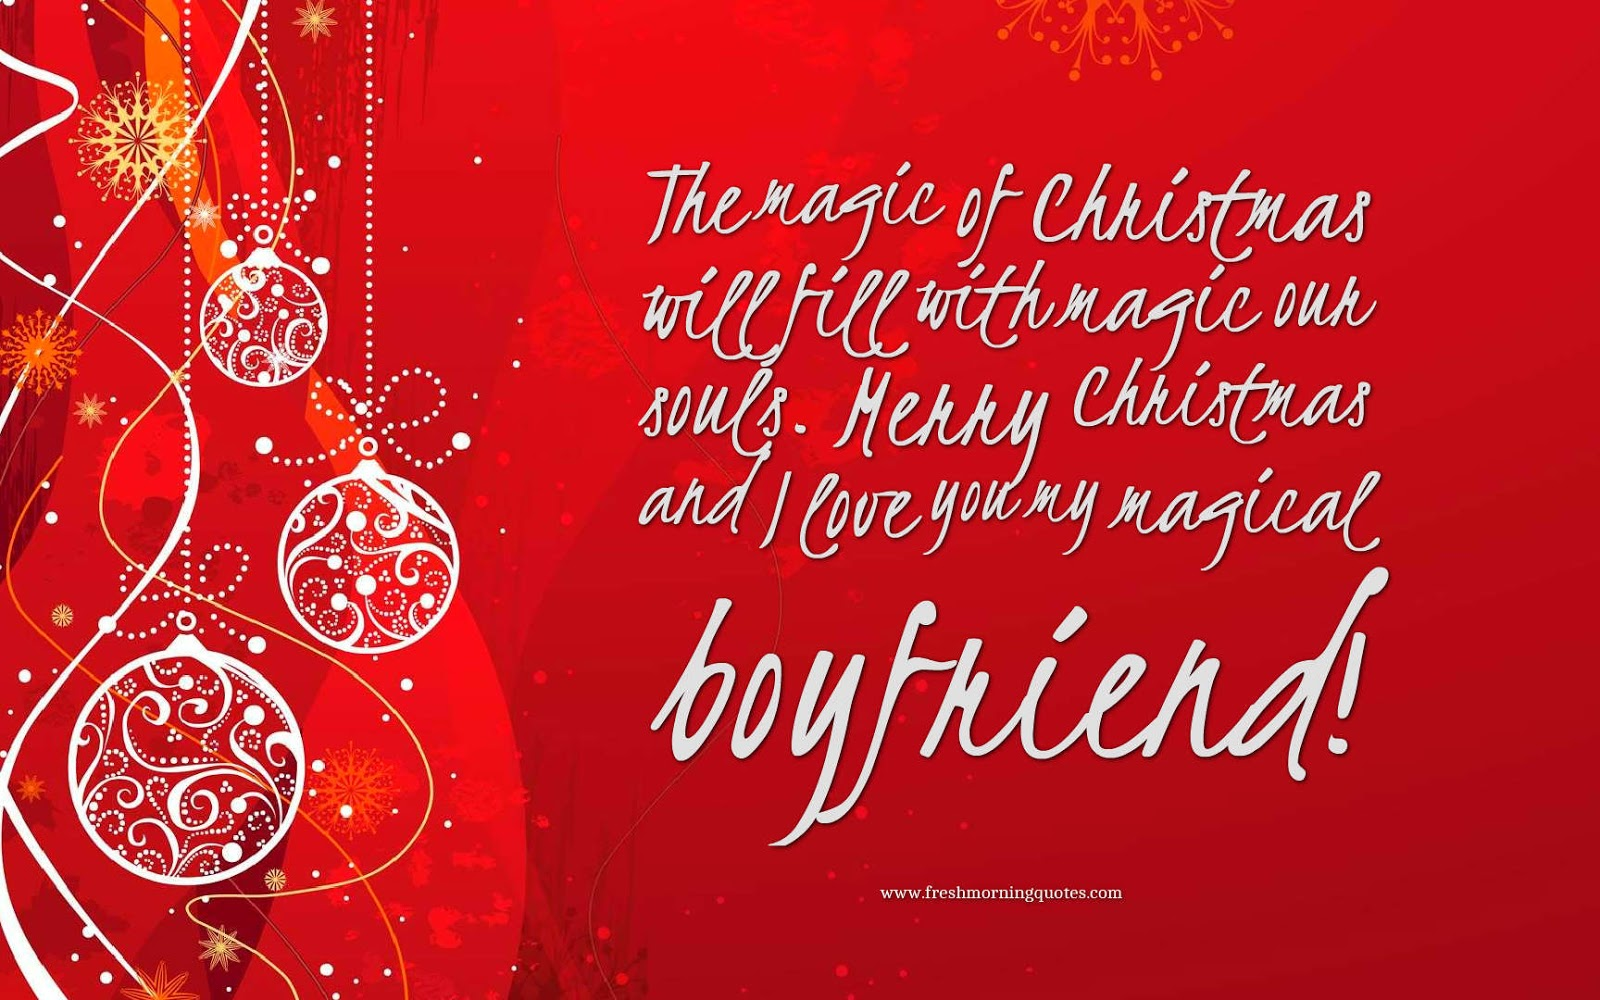 Christmas wishes messages for boyfriend girlfriend